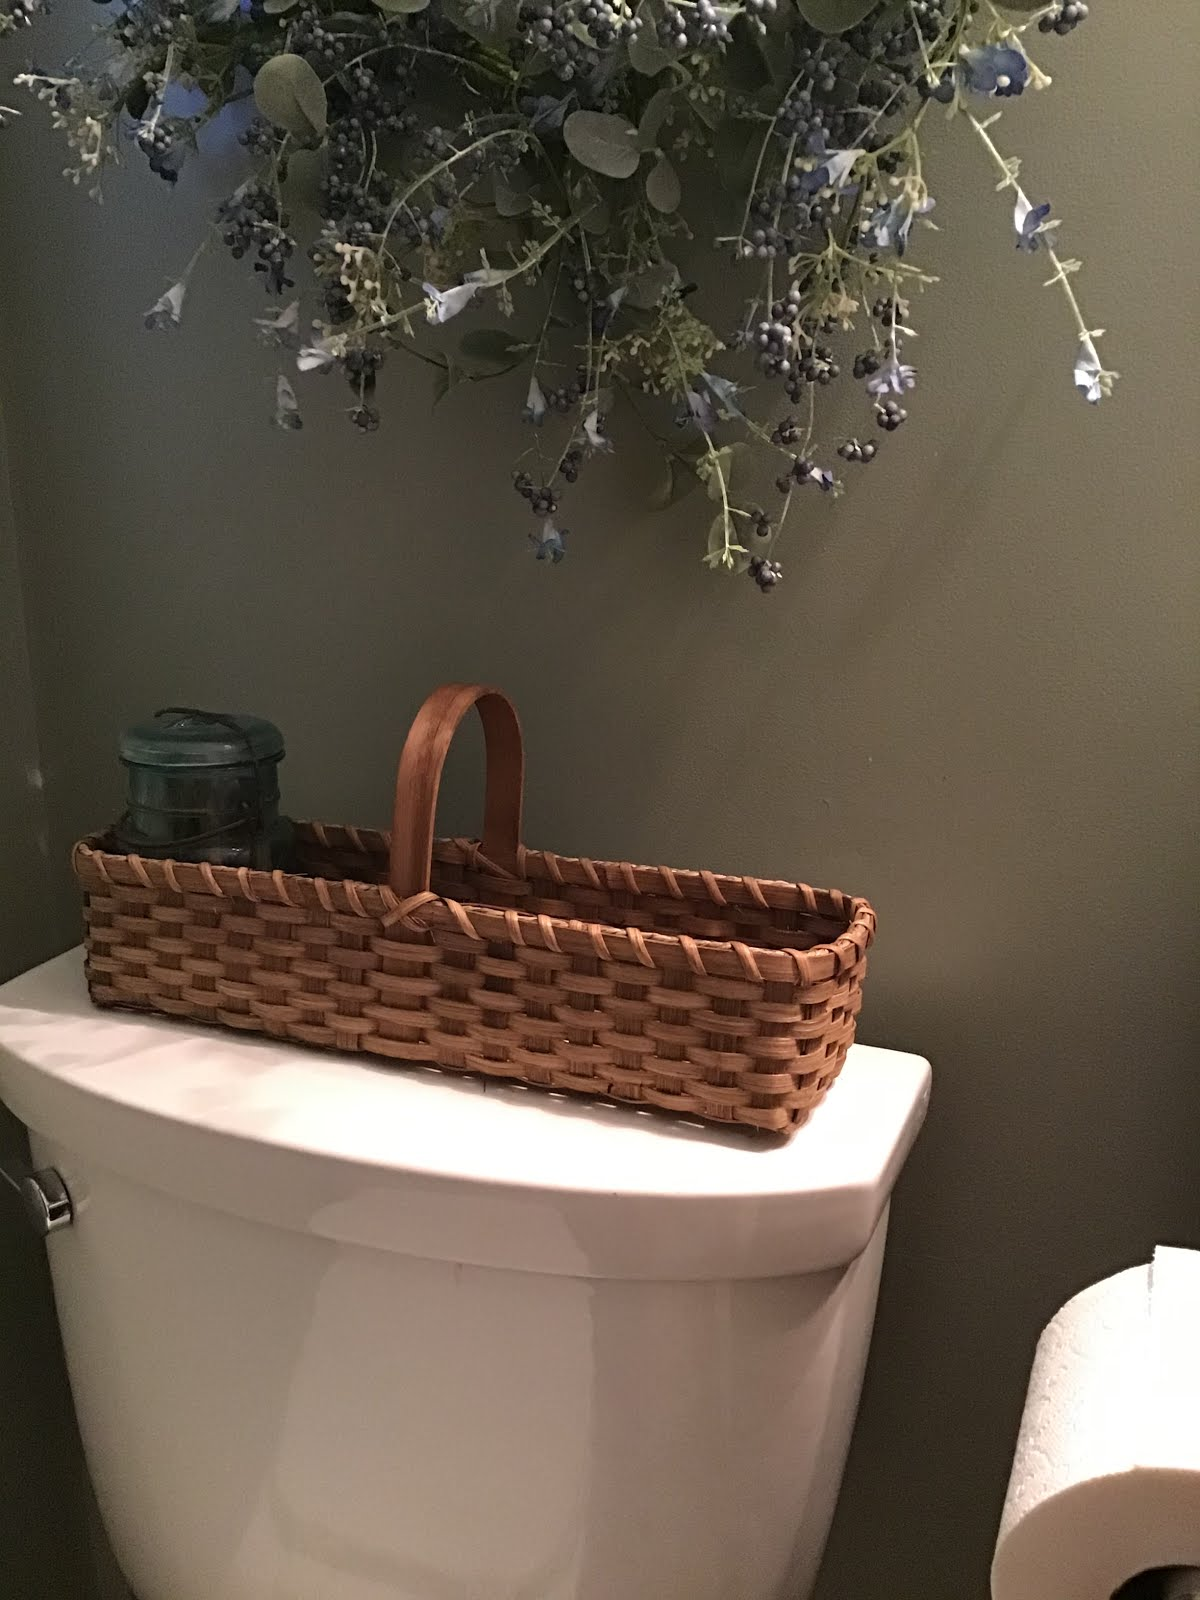 Toilet Tank Basket